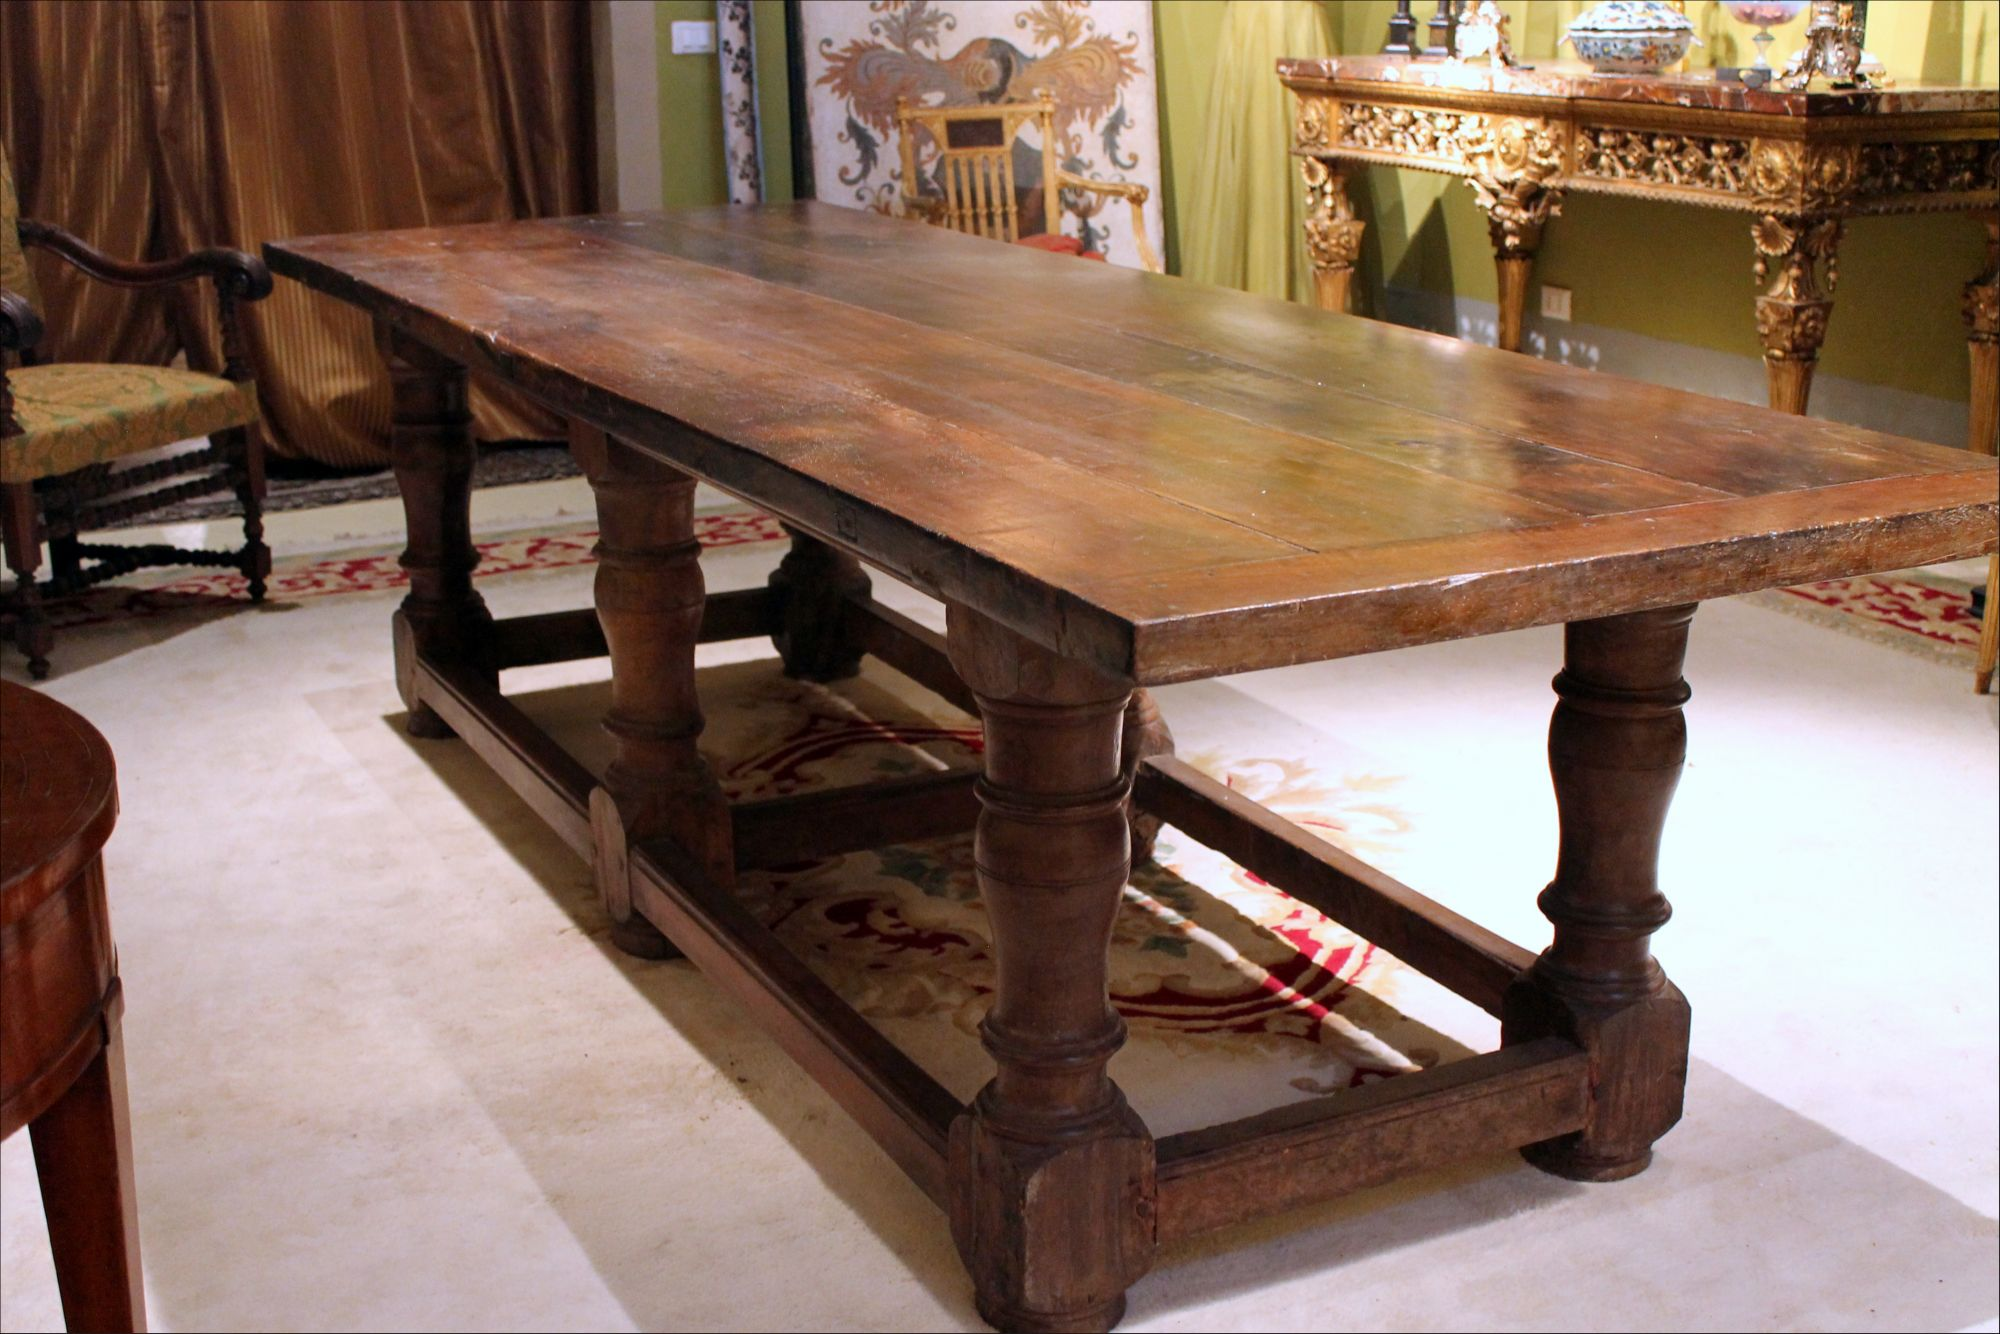 Italian 17th Century Walnut Wood Rustic Farm Trestle Dining Table